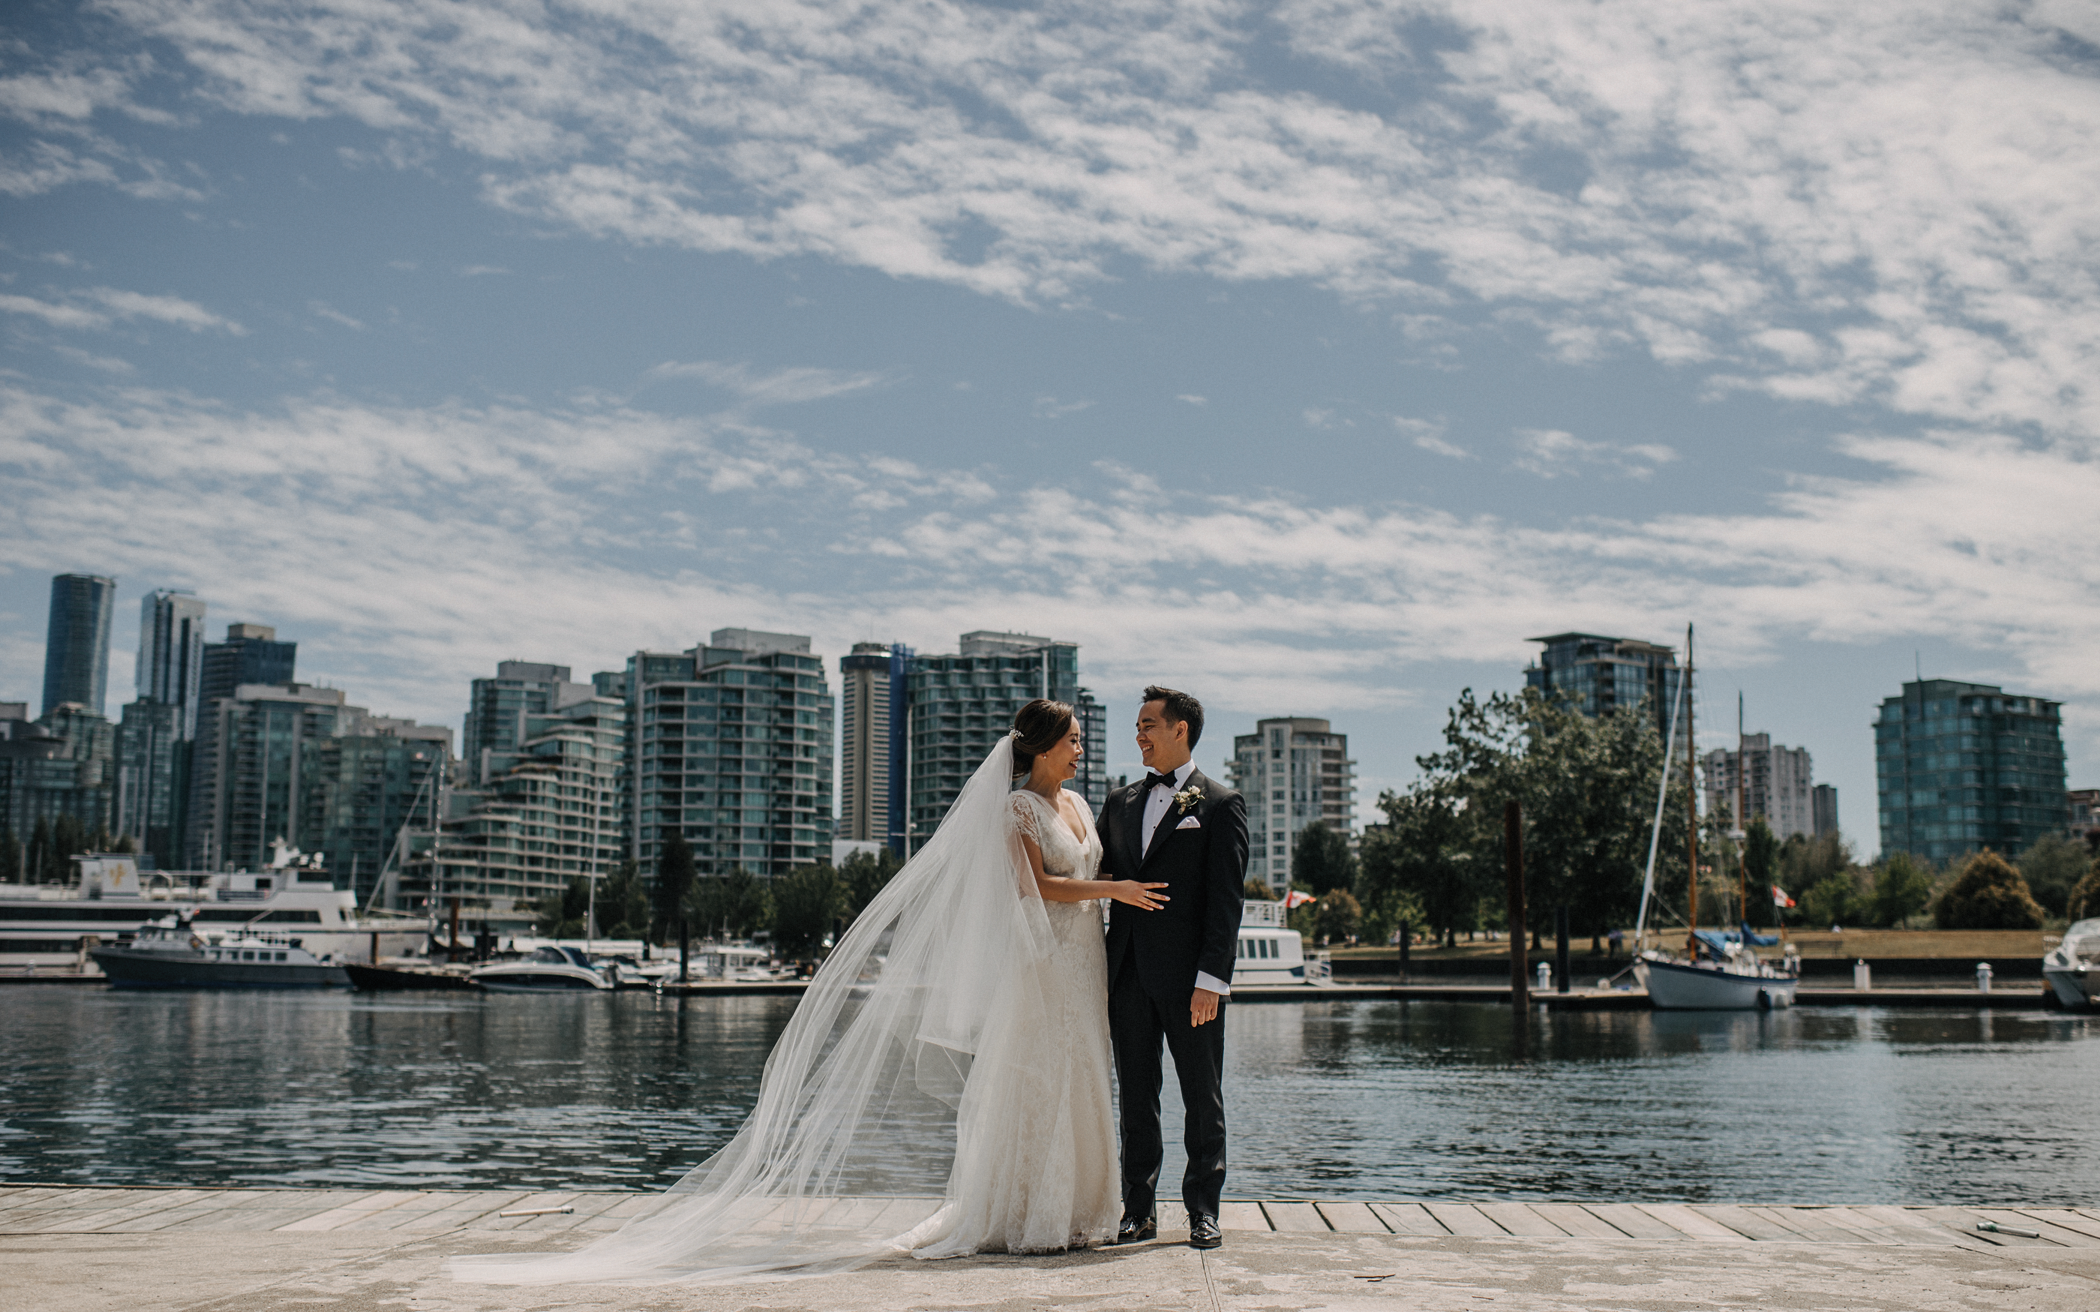 009-kaoverii-silva-pt-wedding-vancouver-photography.png